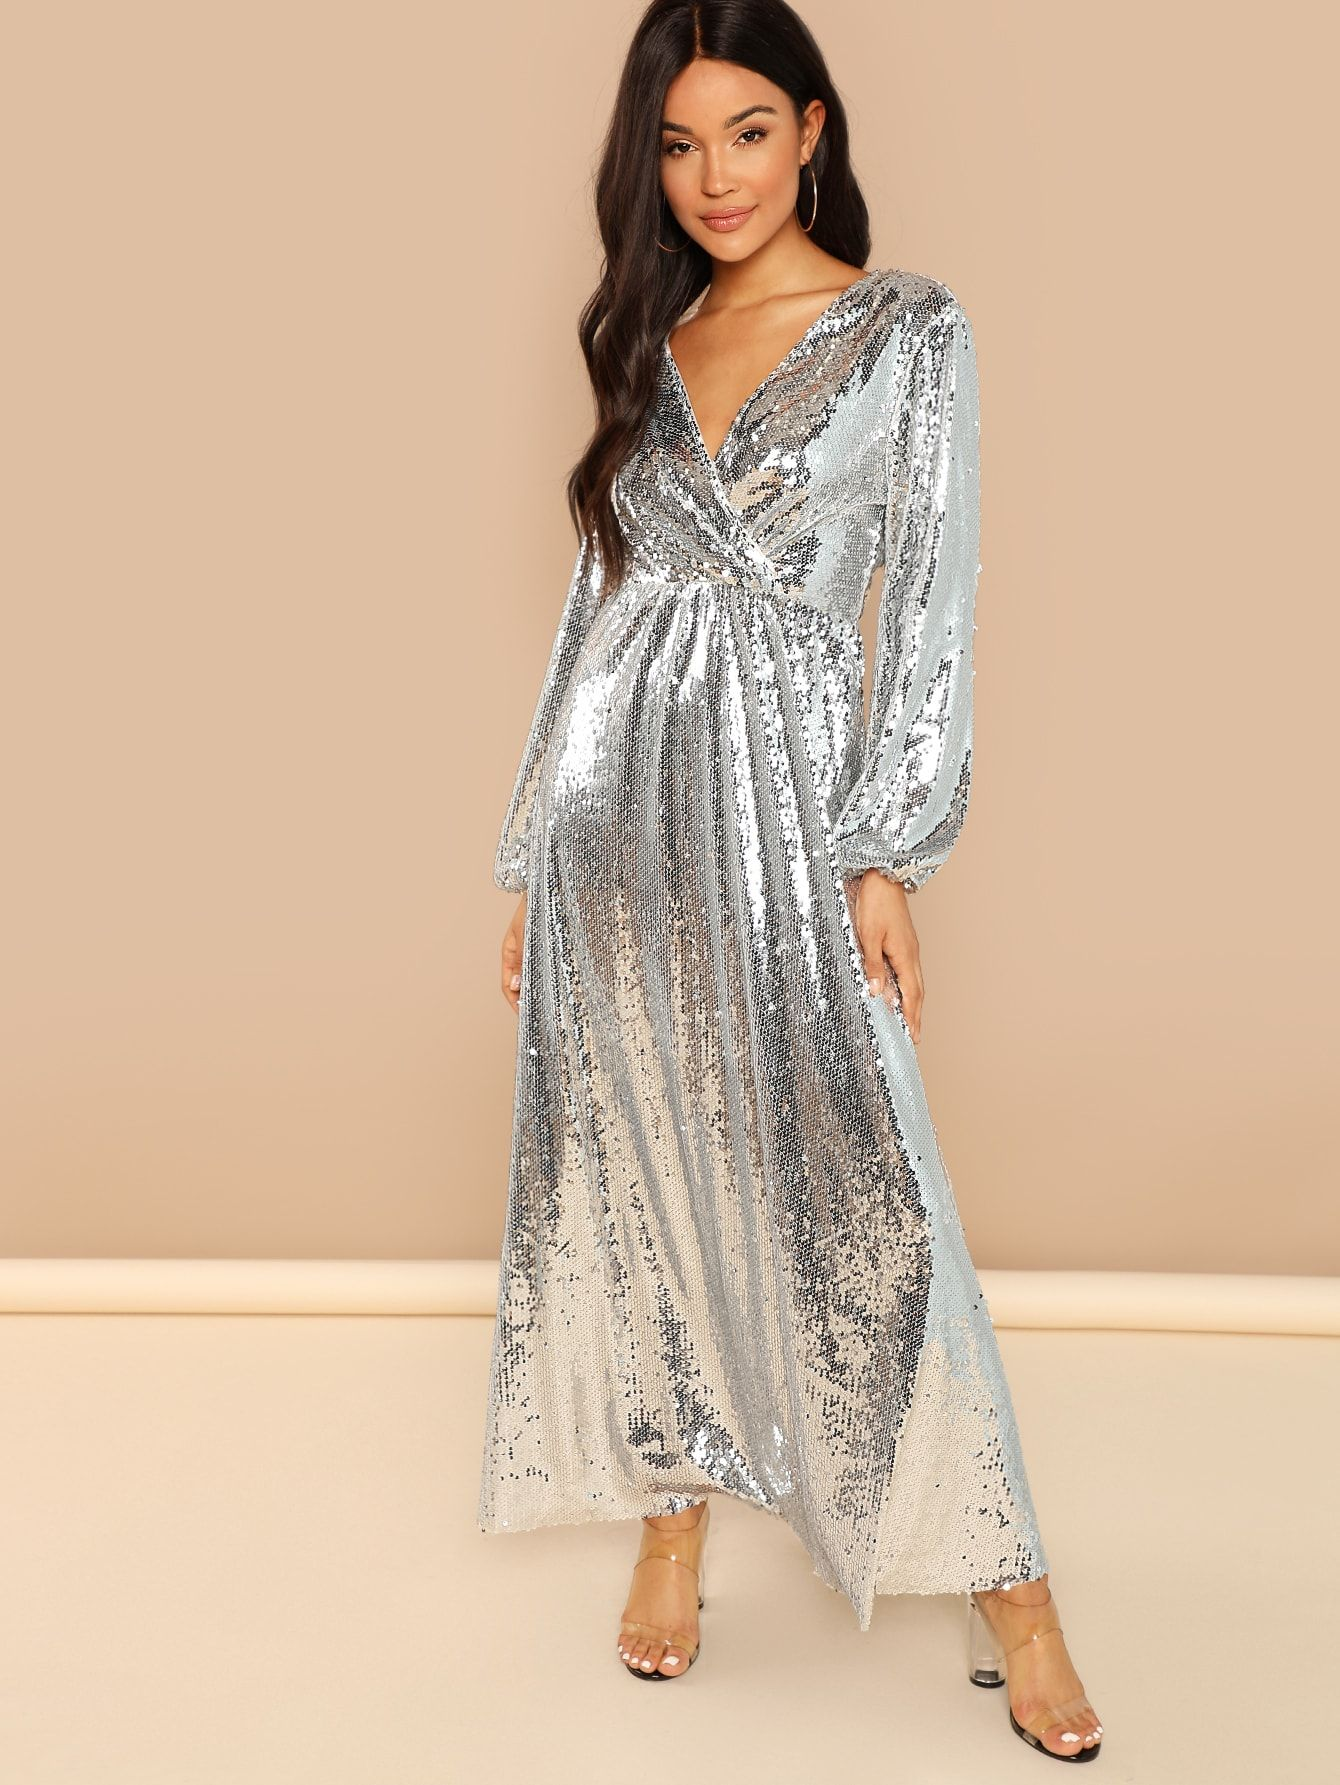 cc3d2ad758988 Blouson Sleeve Wrap Sequin Maxi Dress in 2019 | Shiny & Sparkly ...